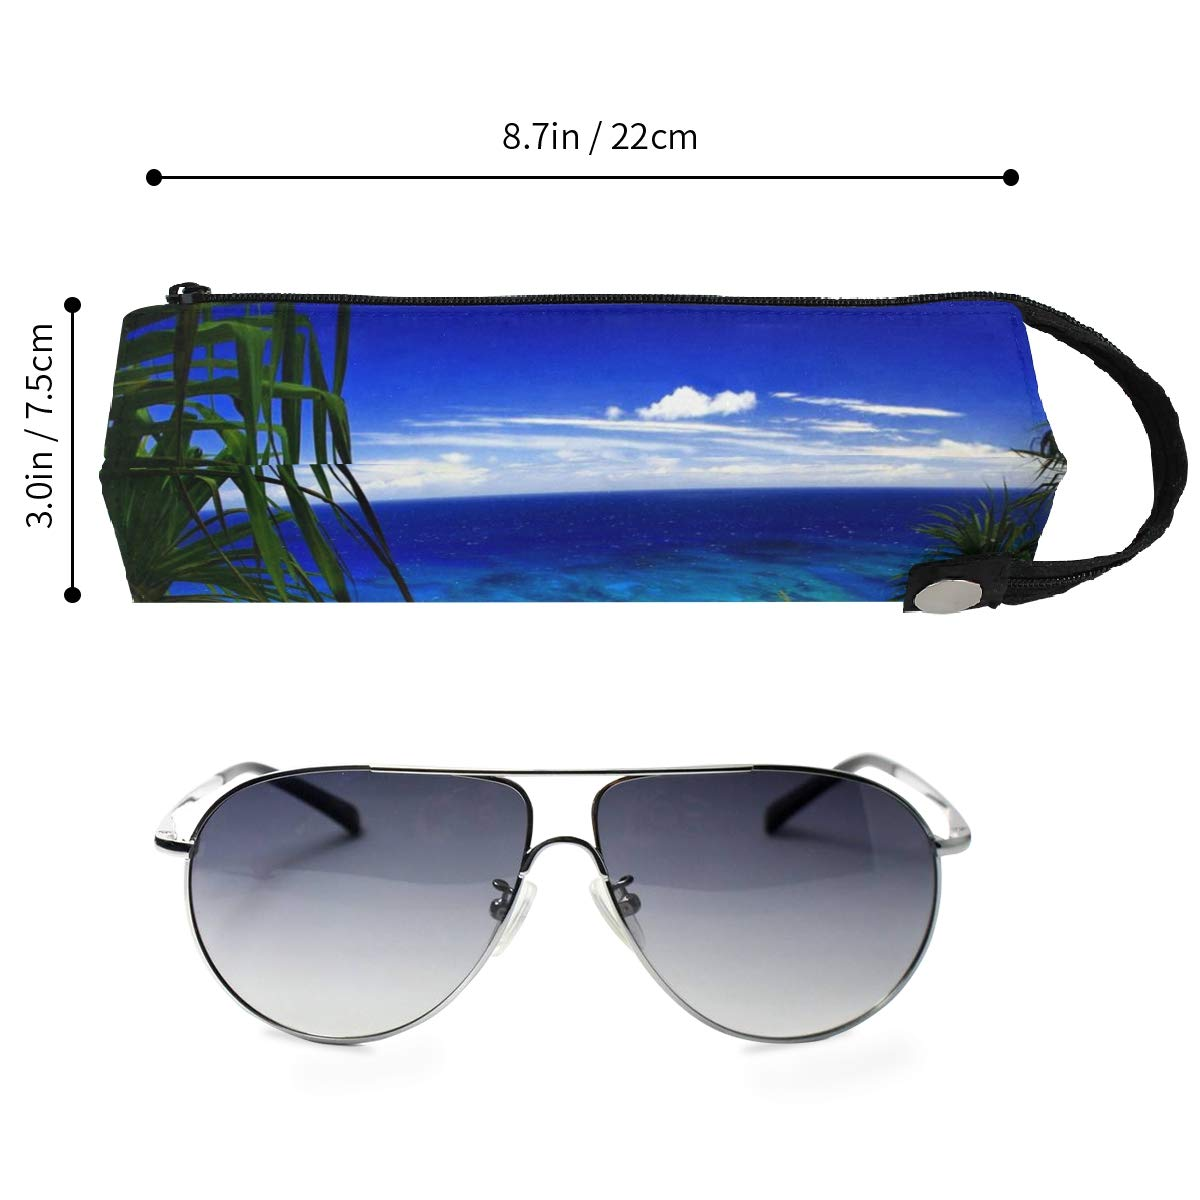 Light In Space Colorful Glasses Case Zipper Soft Sunglasses Pencil Bag Protective Pouch